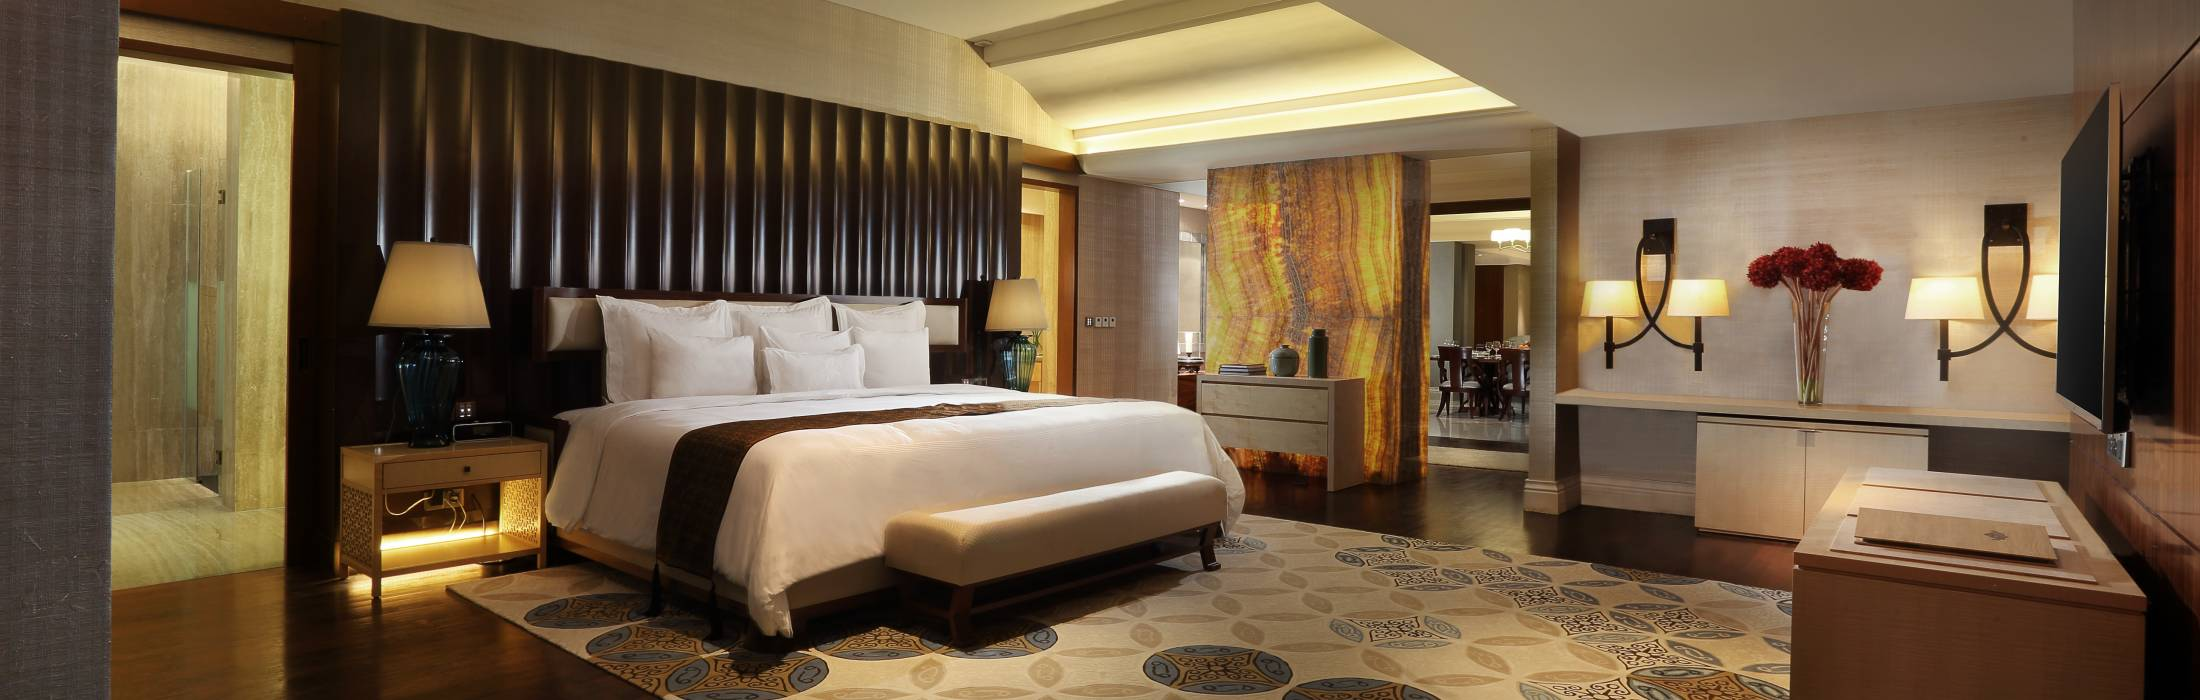 Rooms: Tentrem Presidential Suite Yogyakarta Hotel